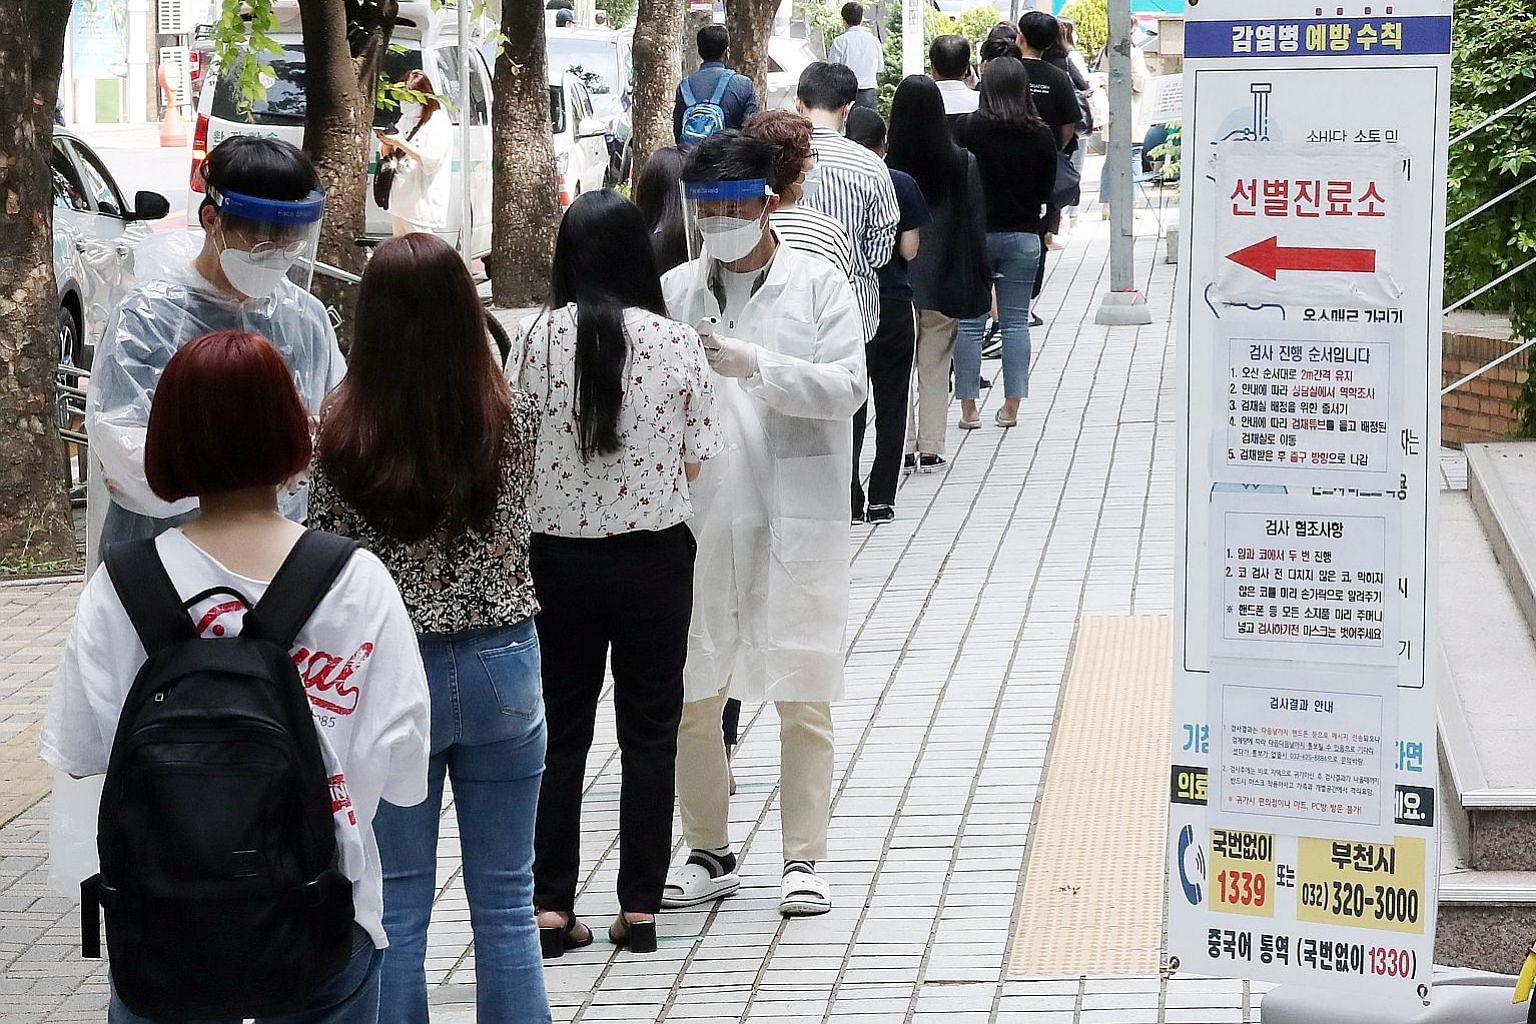 People waiting in line to be tested for coronavirus at an outdoor clinic in Bucheon, South Korea, yesterday. The new cases are mostly centred in the Seoul metropolitan area where half the South Korean population lives.